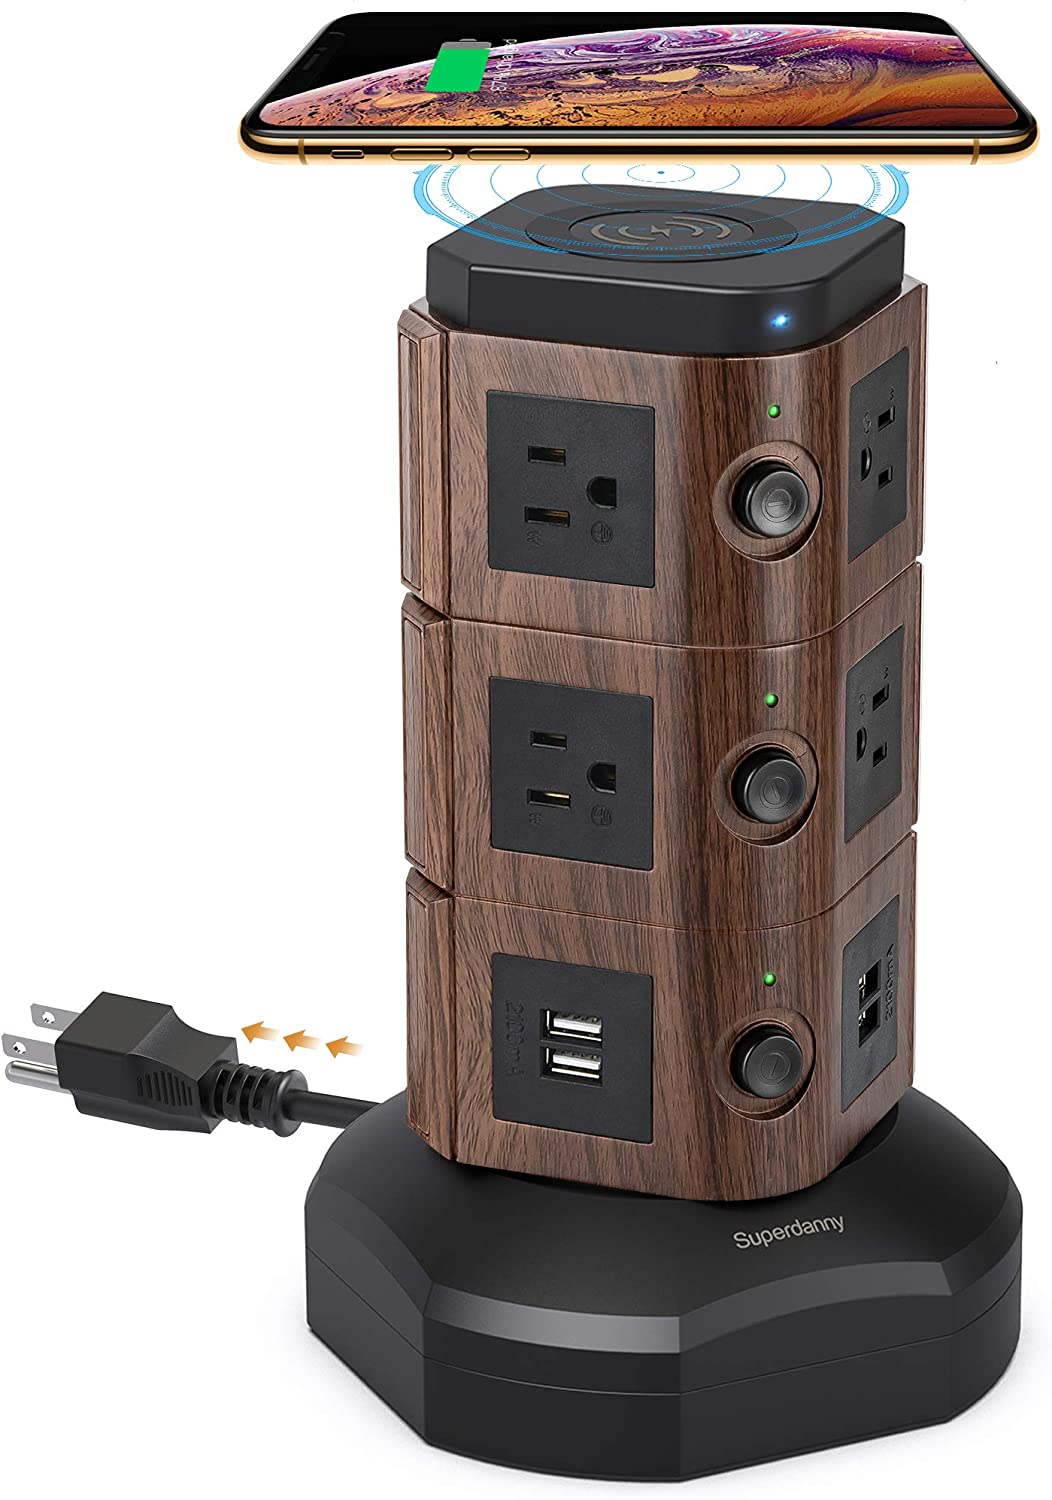 SUPERDANNY Surge Protector Tower with 10W Wireless Charger, Power Strip Tower Vertical Charging Station with 10 AC Outlets+4 USB Slots and 6.5ft Extension Cord for Home Office Garage, Deep Wood Grain